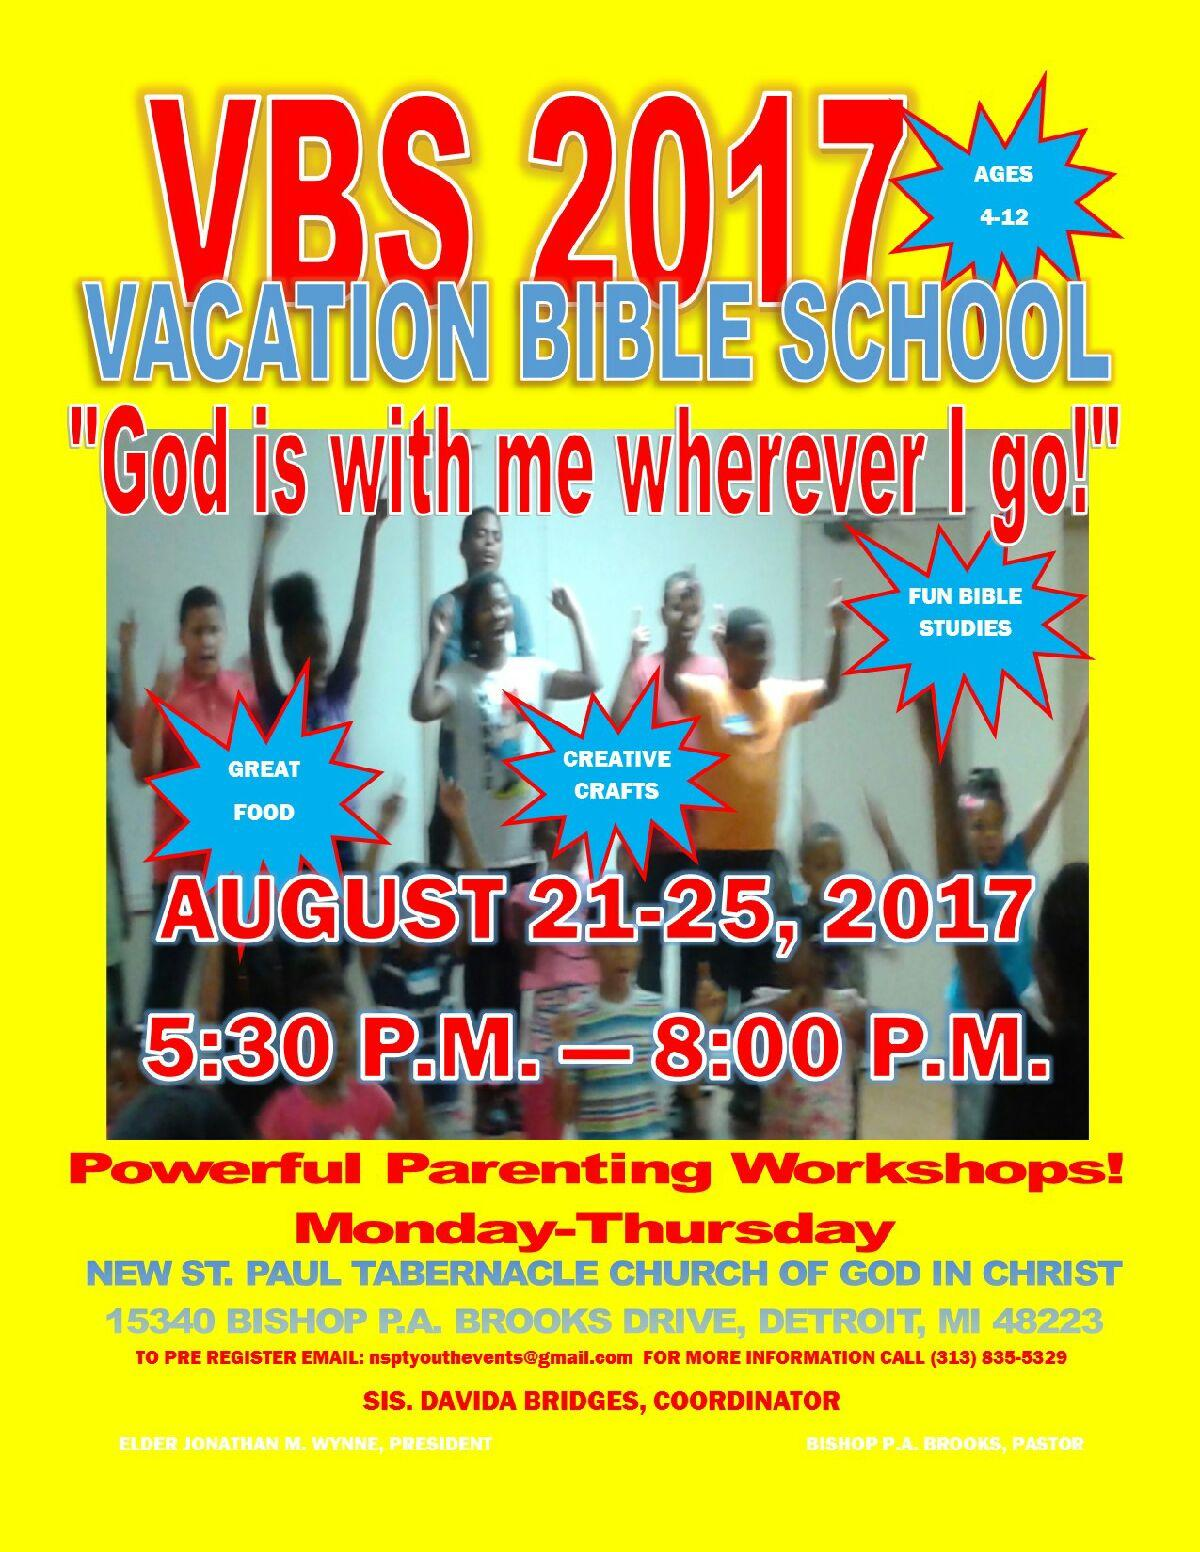 VBS95FLYER95201795FINAL95UPDATED959595Version-2